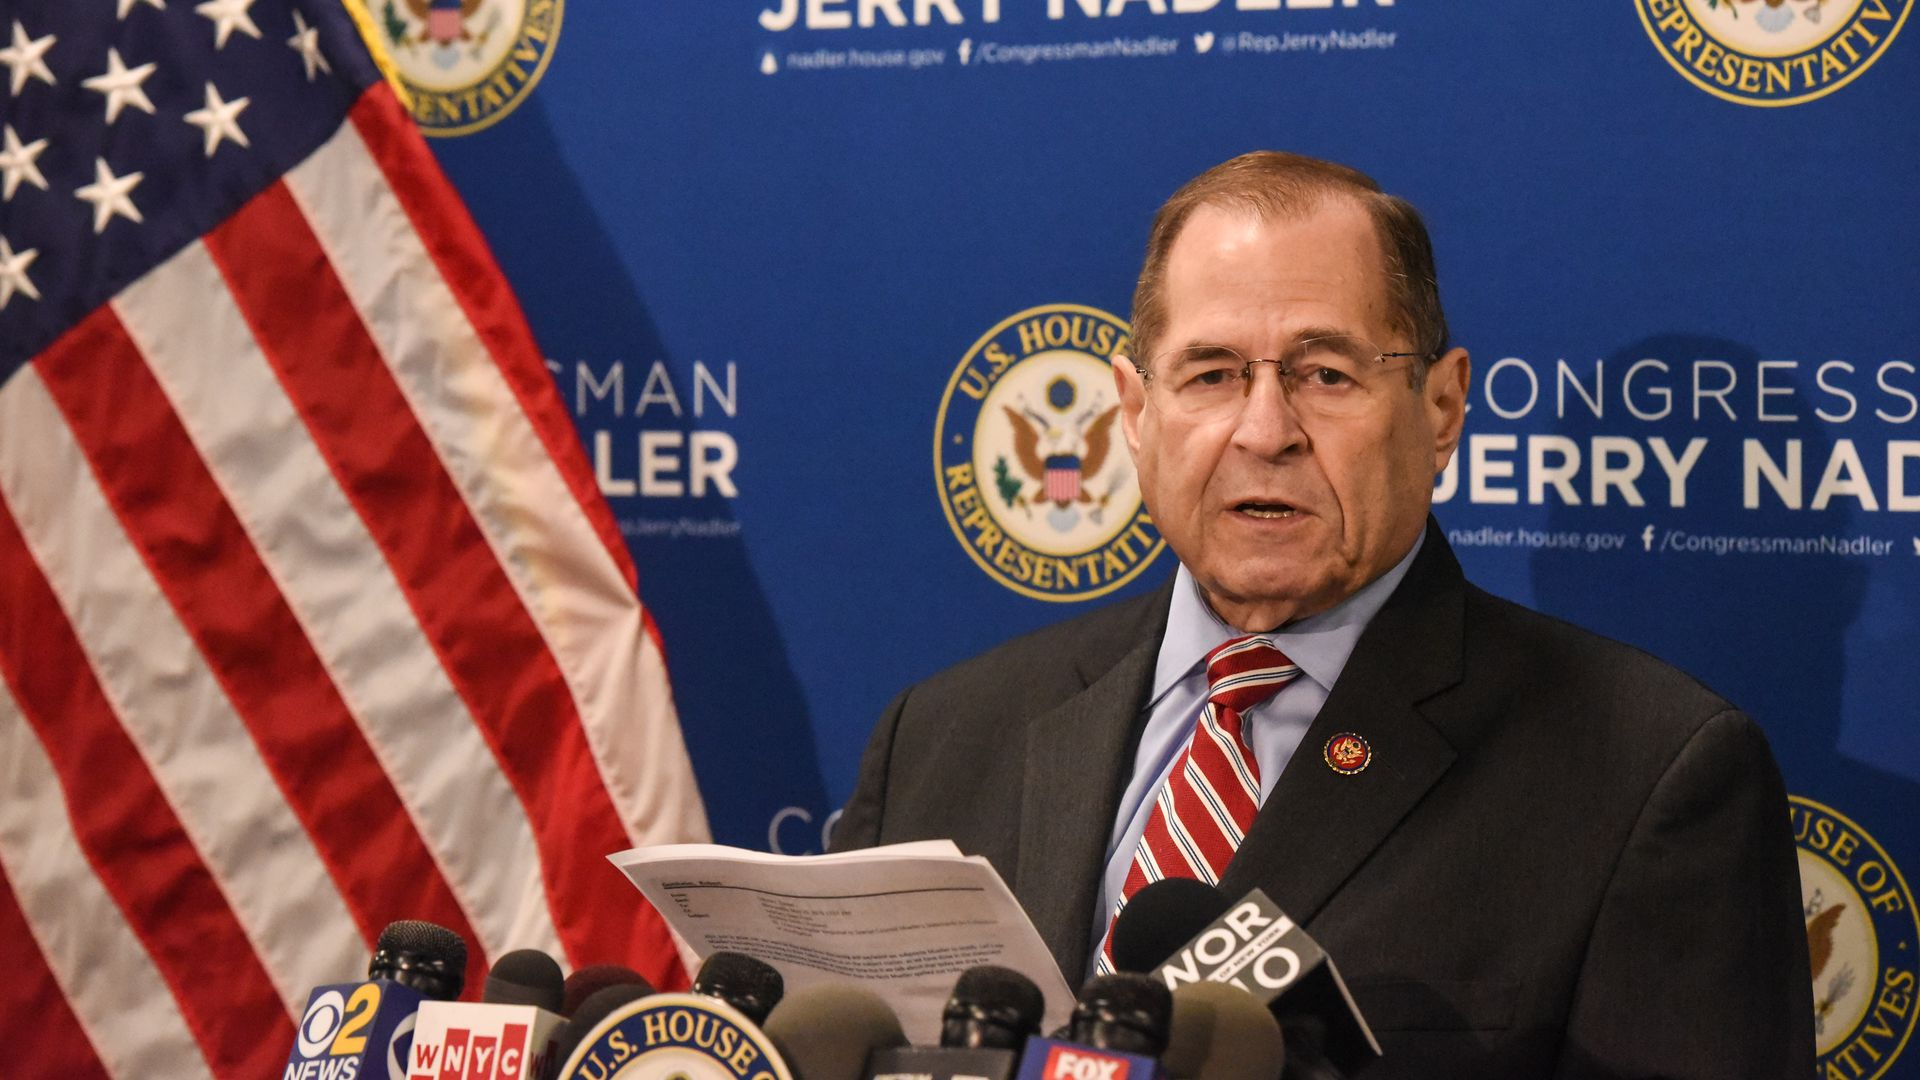 Committee Chairman of U.S. House Judiciary Committee Rep. Jerry Nadler (D-NY) speaks to members of the press on May 29.